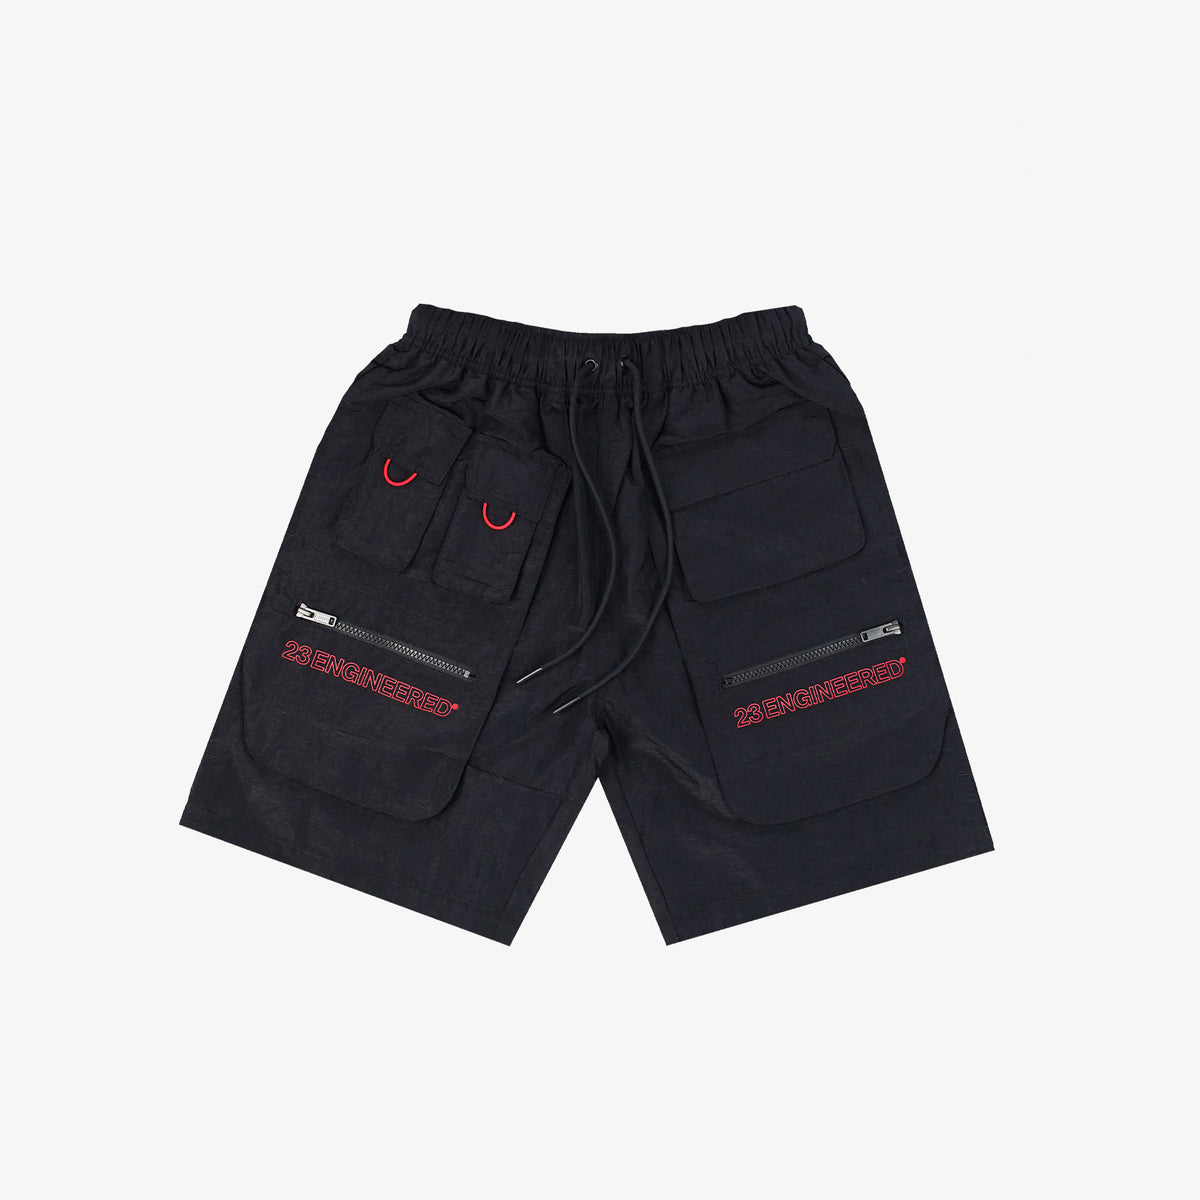 Jordan 23 Engineered Shorts - Black